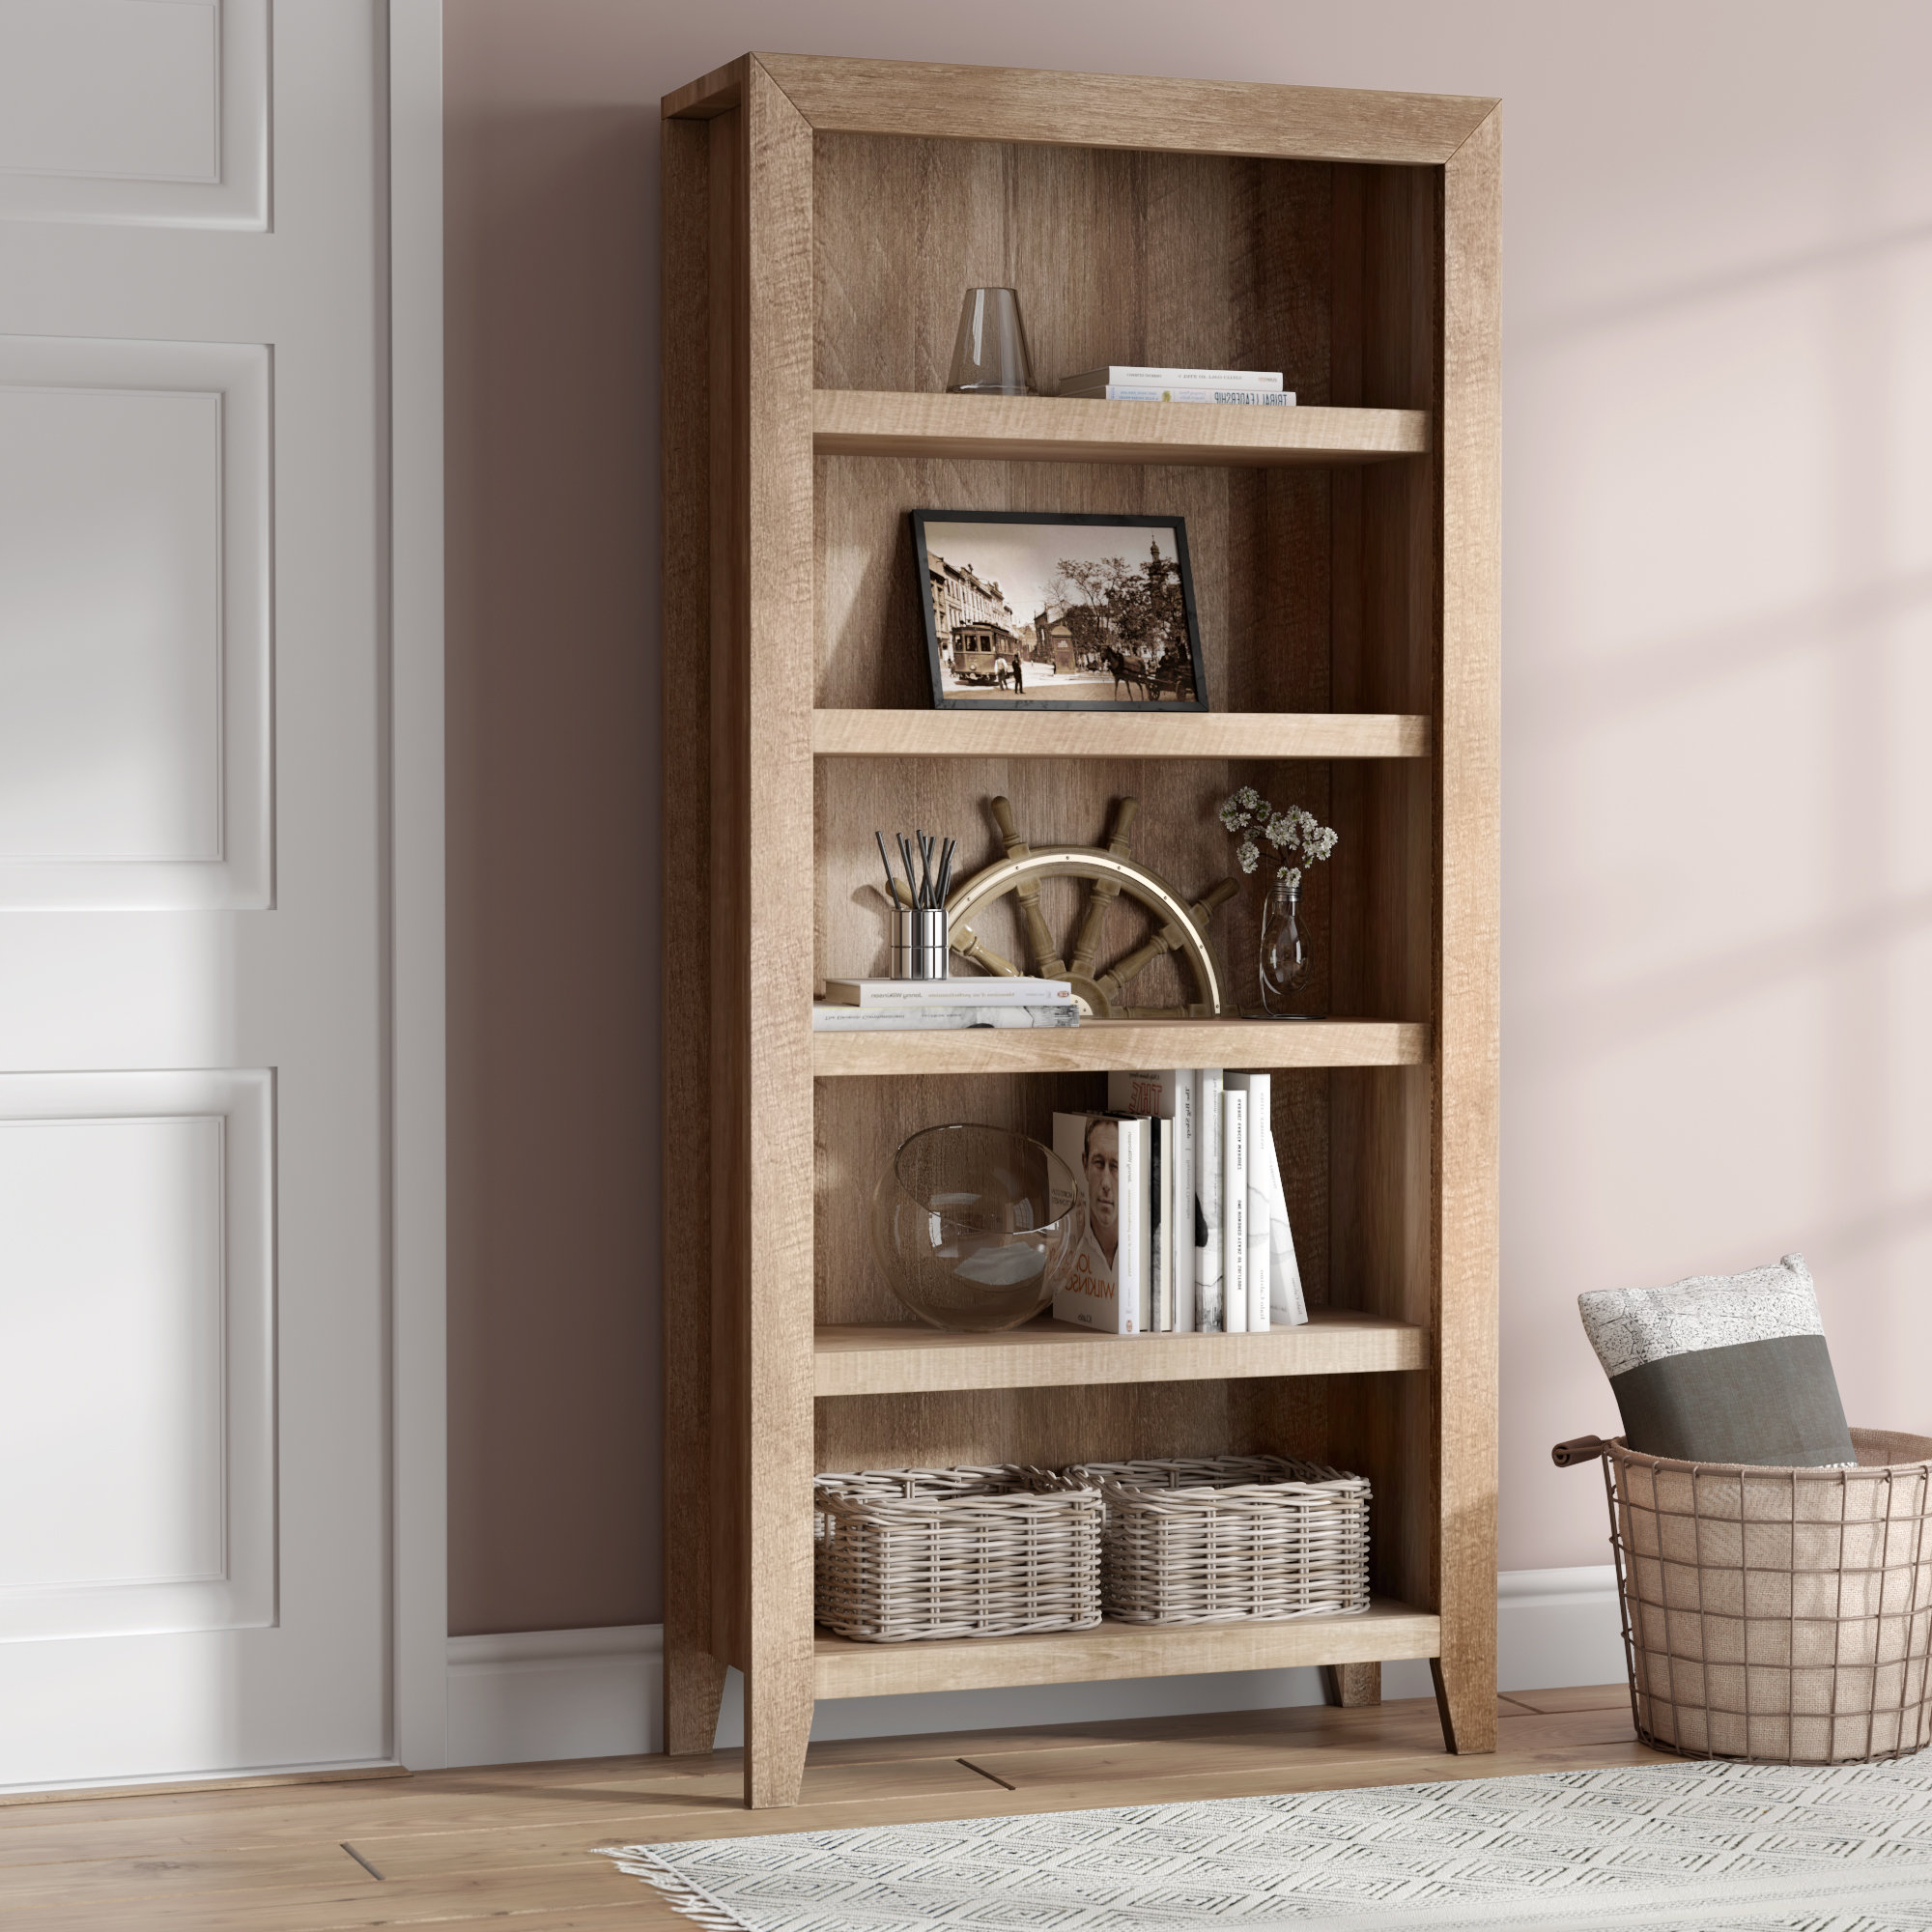 Preferred Orford Standard Bookcases In Three Posts Orford Standard Bookcase (Gallery 1 of 20)